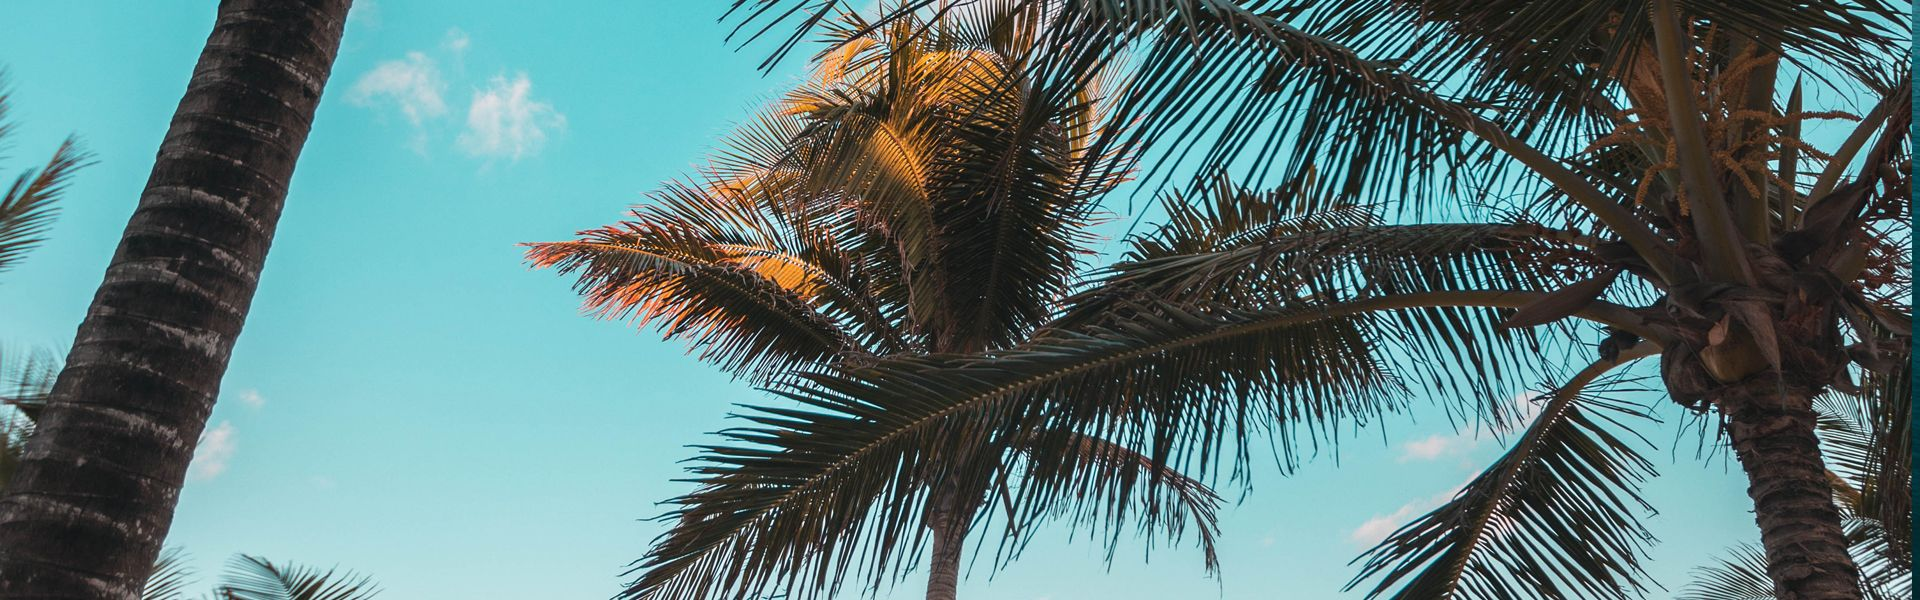 Palm Trees Background Image